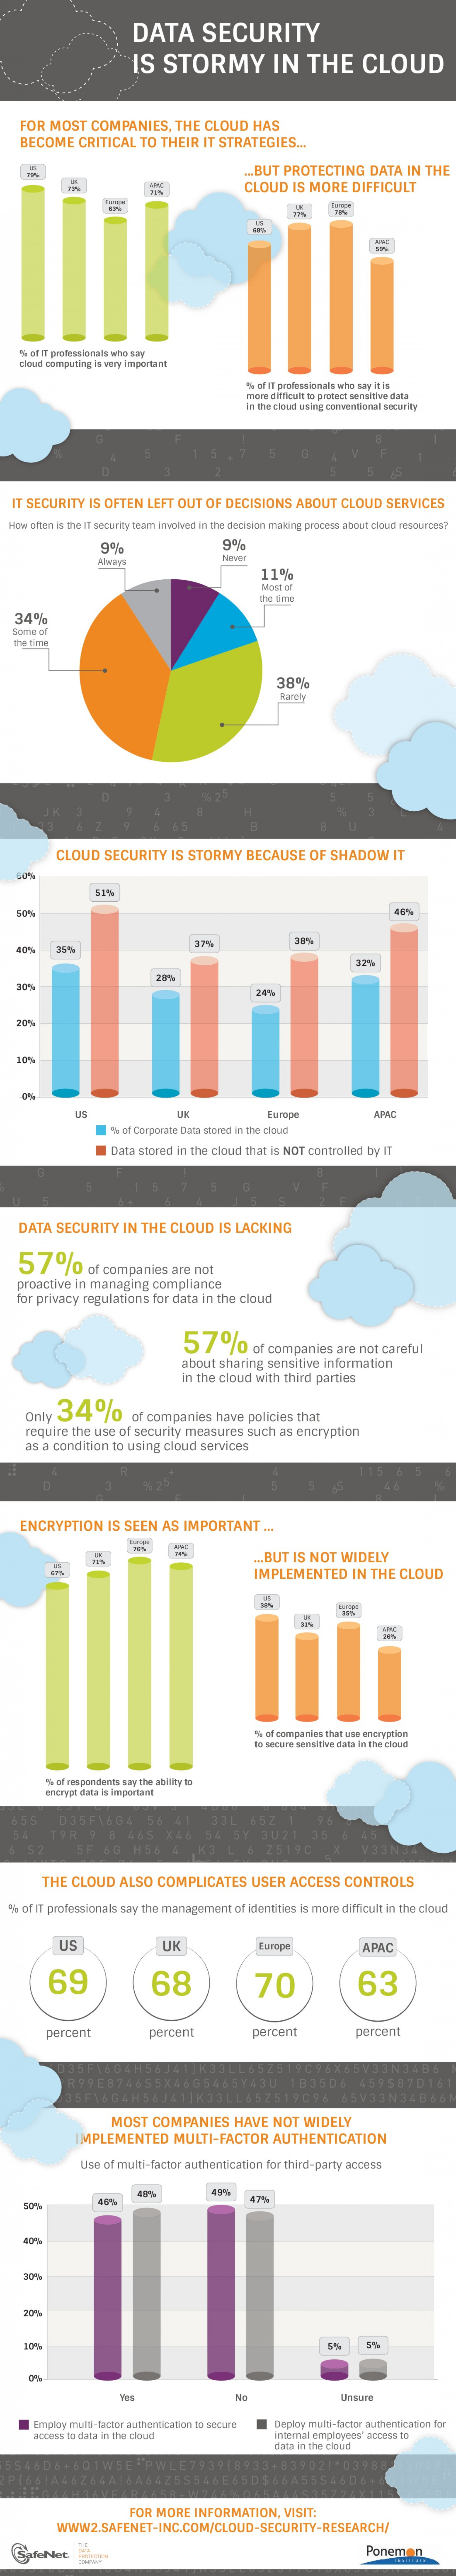 Data Security is Stormy in the Cloud Infographic